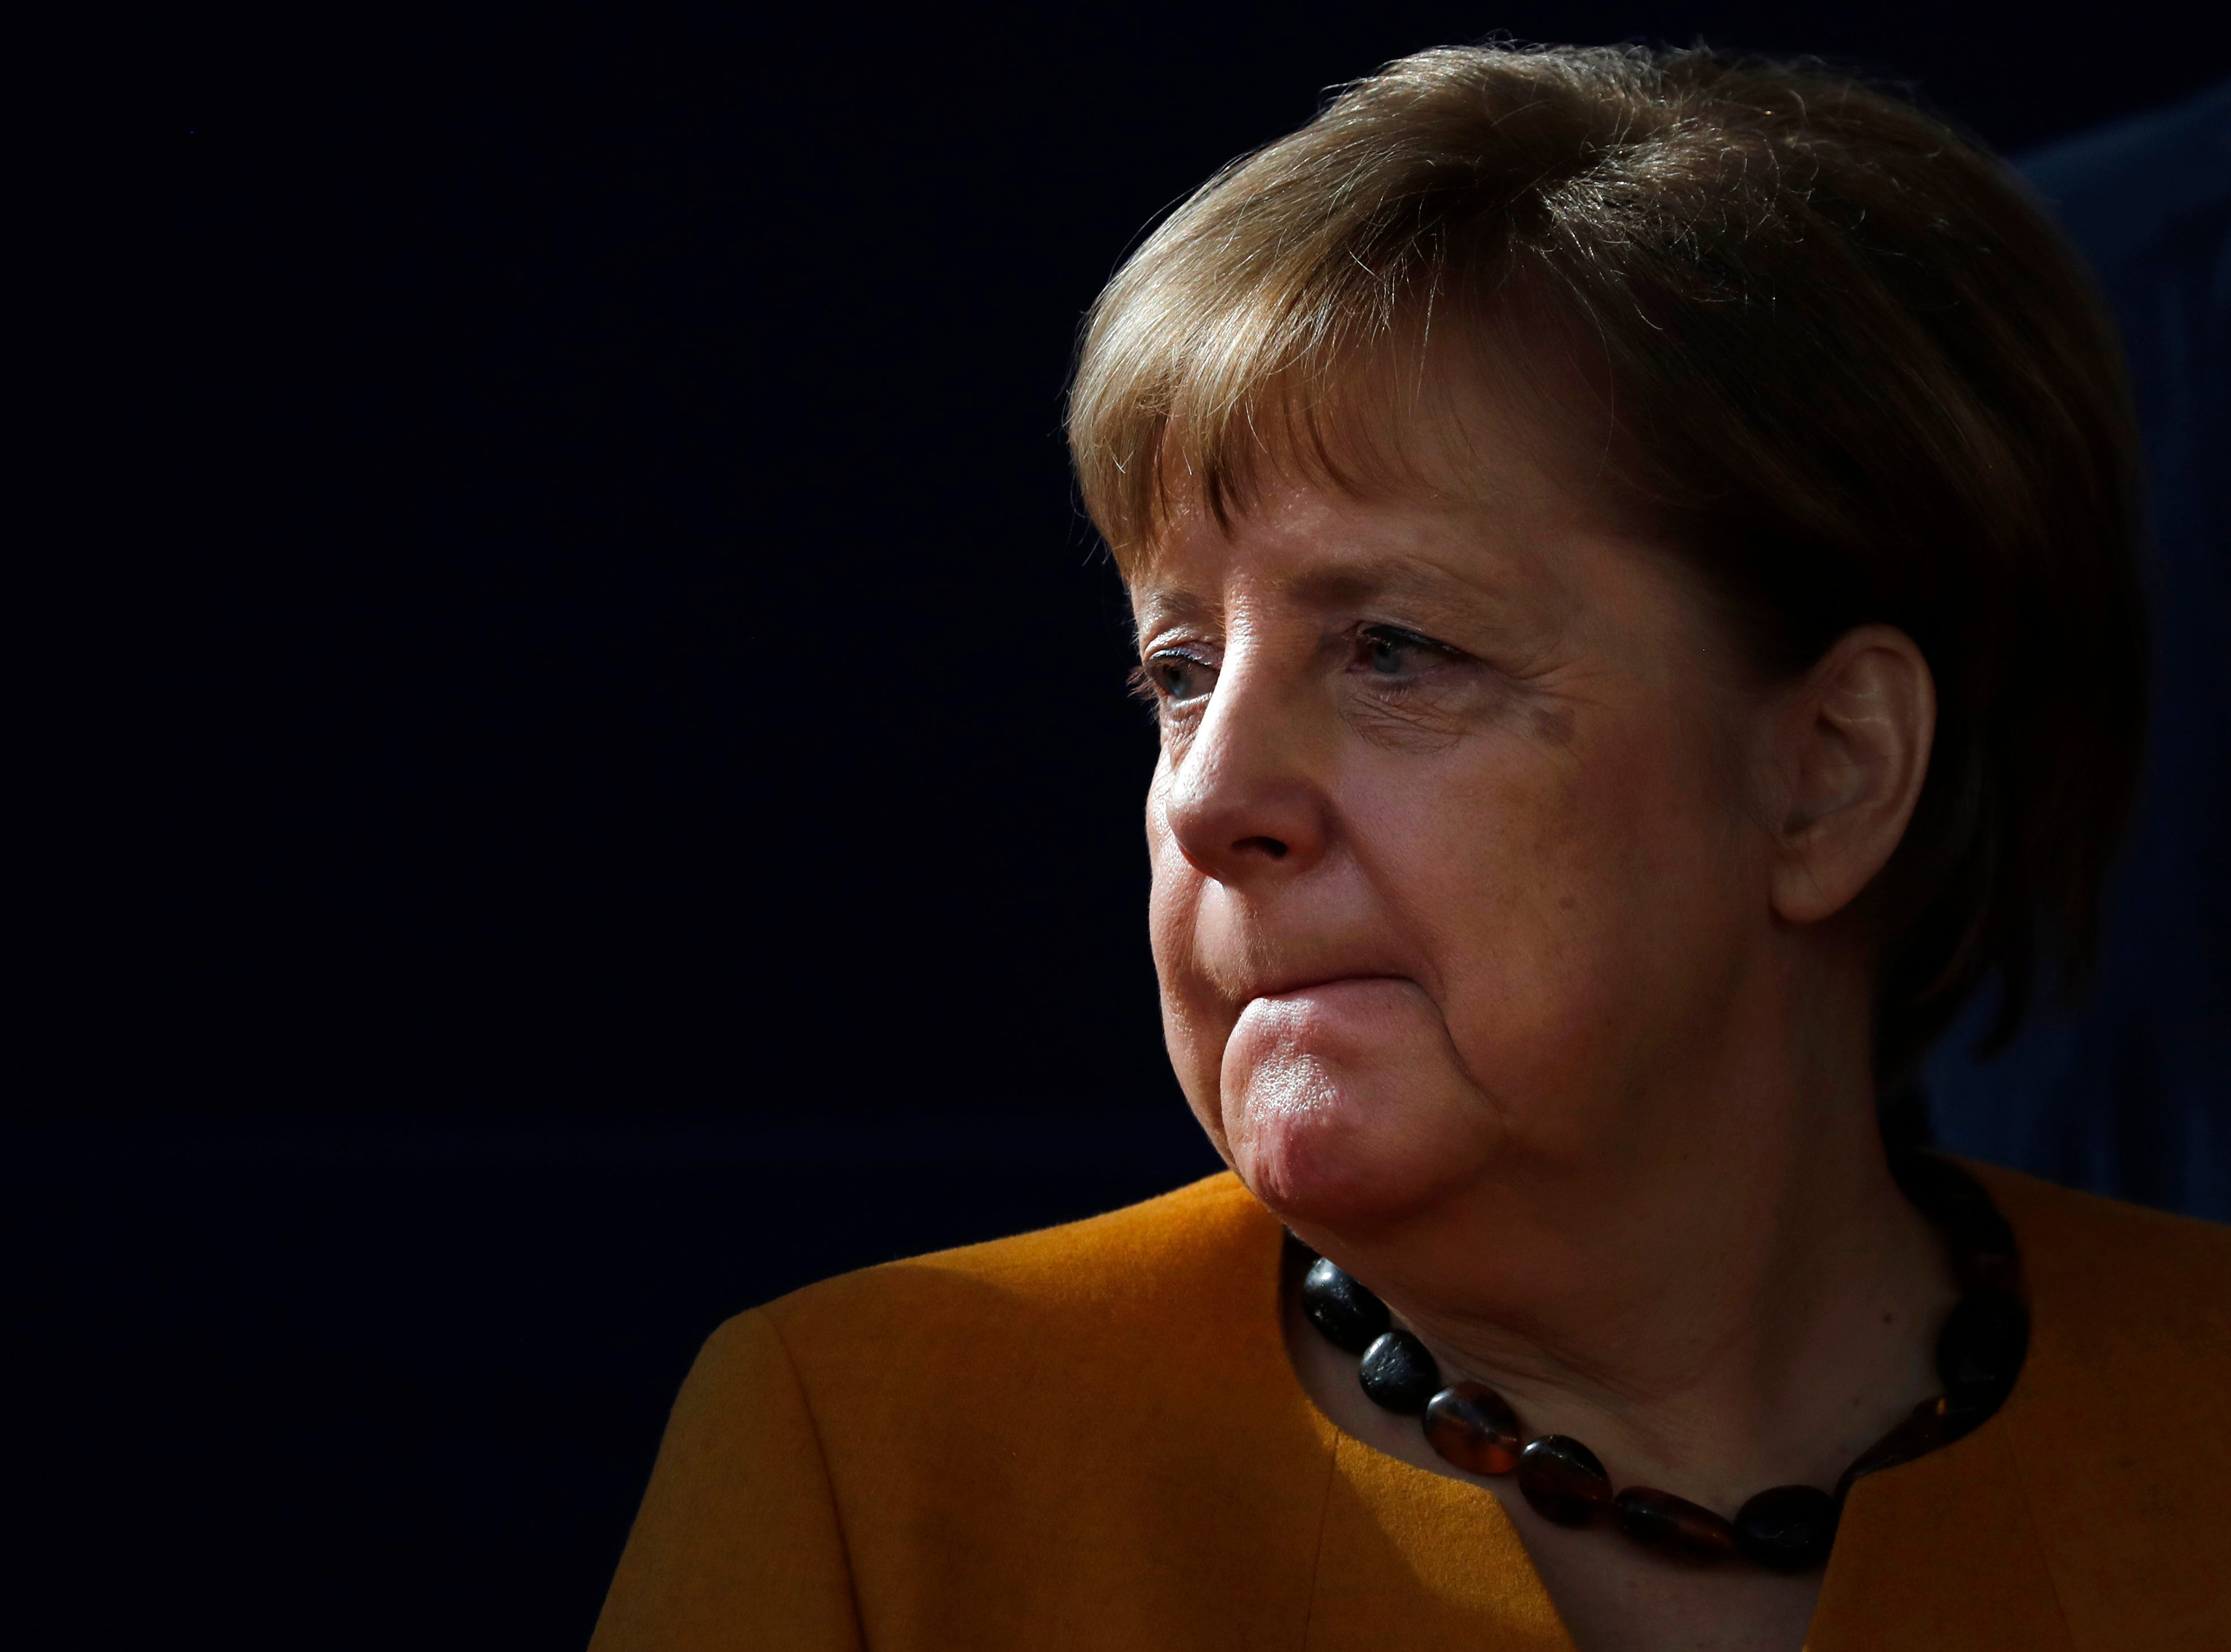 German Chancellor Angela Merkel waits for the start of a group photo at an EU summit in Brussels, Friday, March 22, 2019. European Union leaders gathered again Friday after deciding that the political crisis in Britain over Brexit poses too great a threat and that action is needed to protect the smooth running of the world's biggest trading bloc.